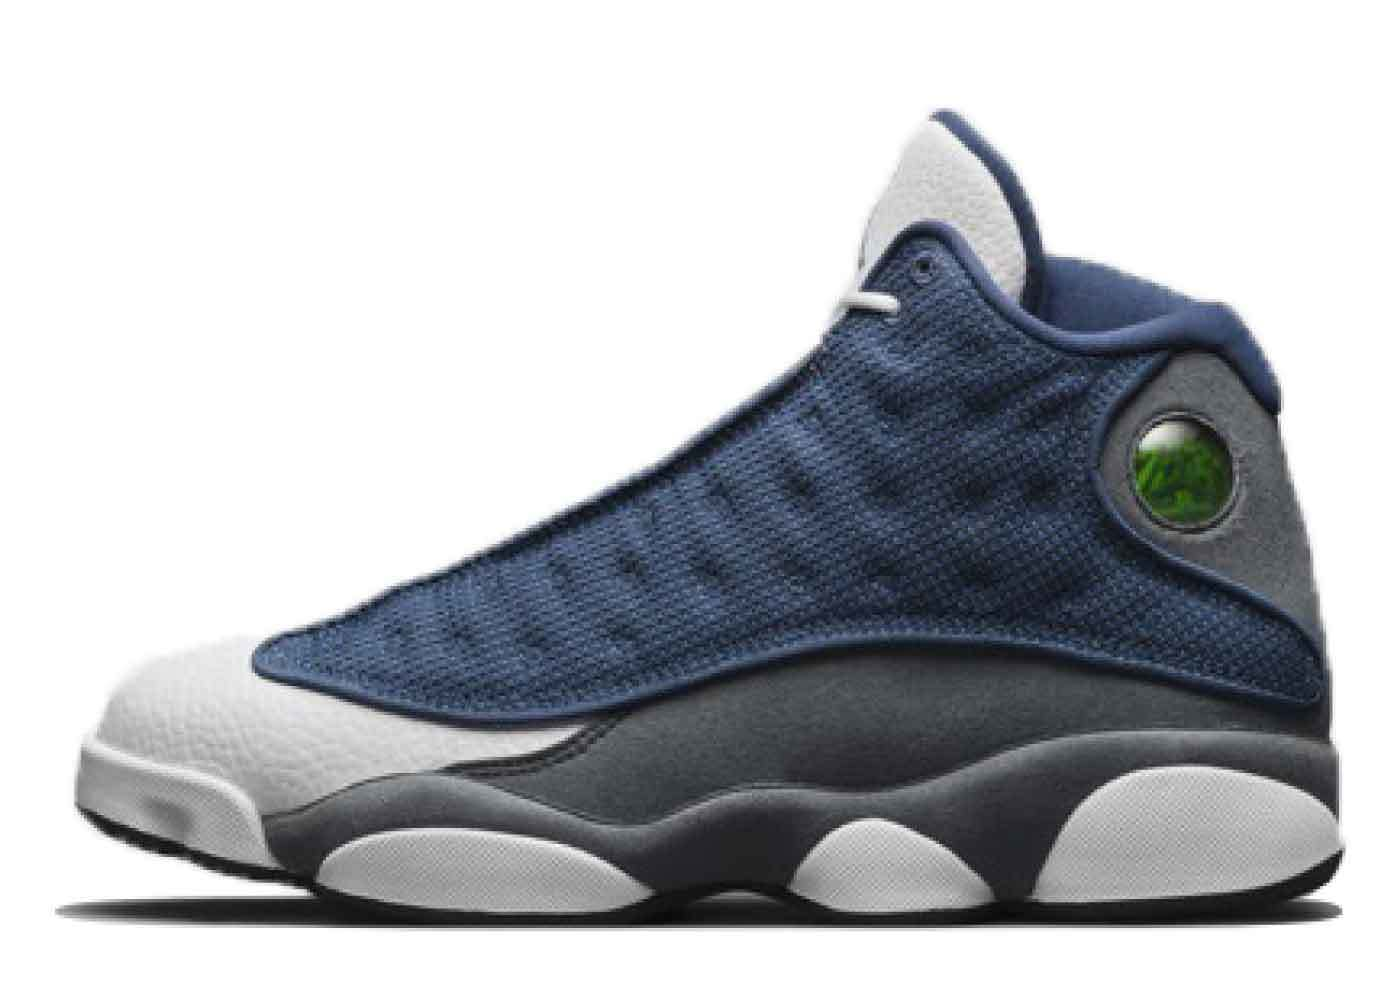 Nike Air Jordan 13 Retro Flint Greyの写真